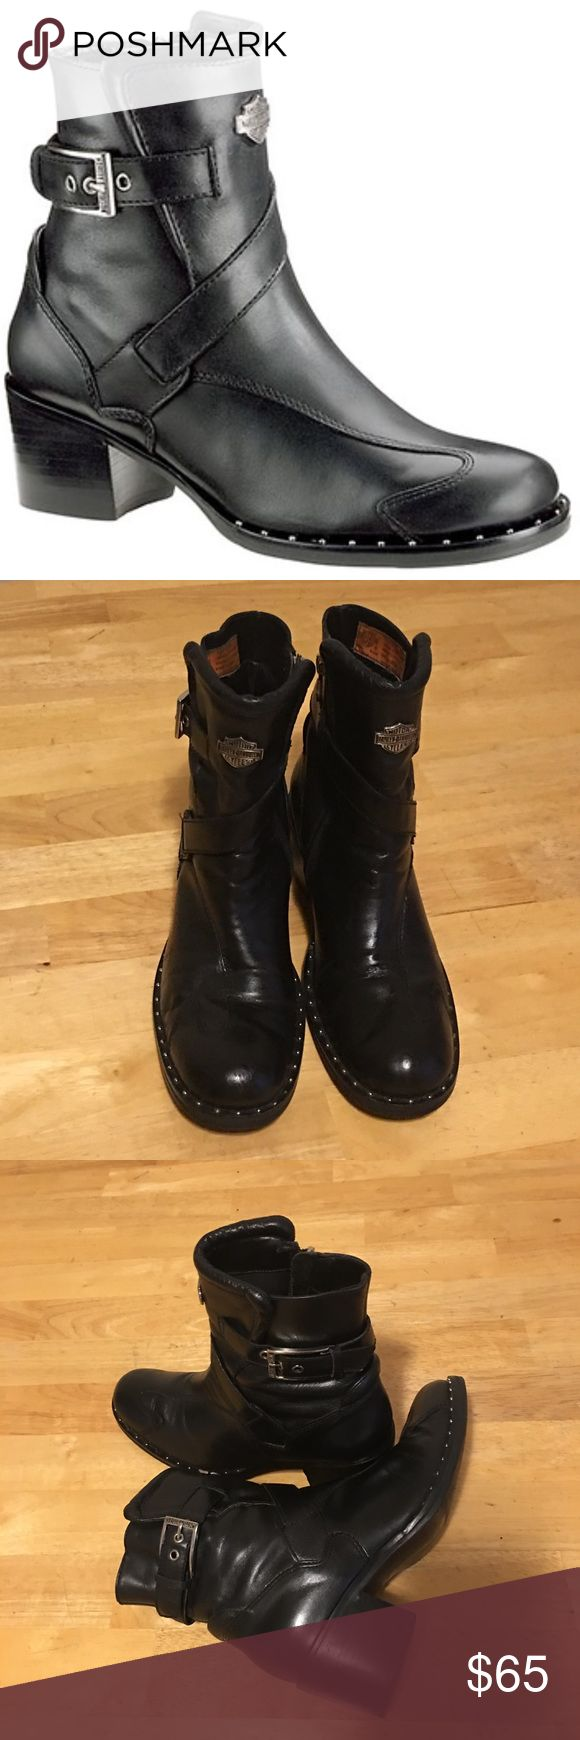 genuine harley davidson ladies boots genuine harley davidson legendary boots ladies style bella